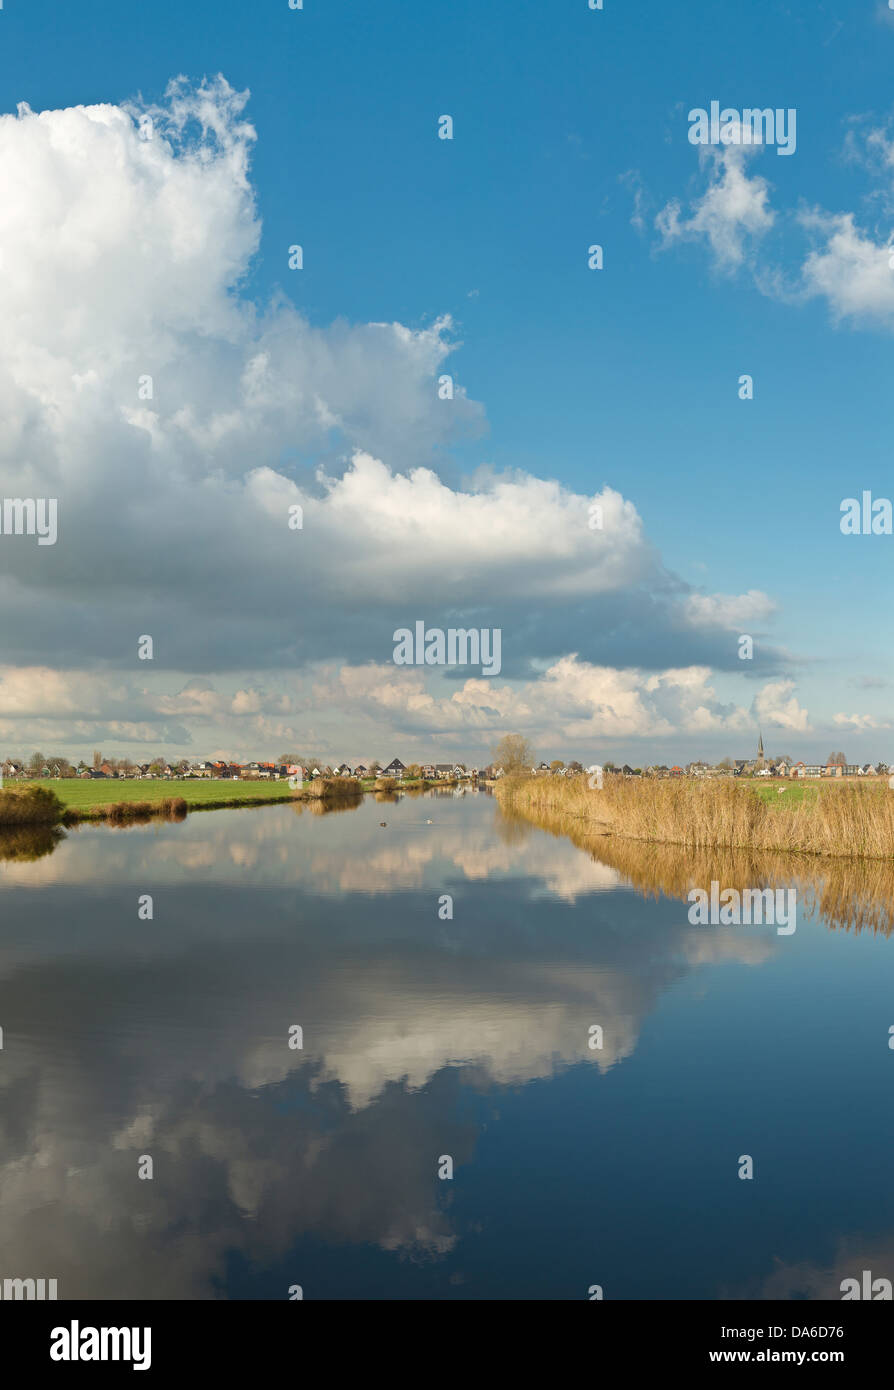 Holland, Netherlands, Europe, Wormer, Reflections, calm, water, landscape, water, winter, clouds, reflections, - Stock Image